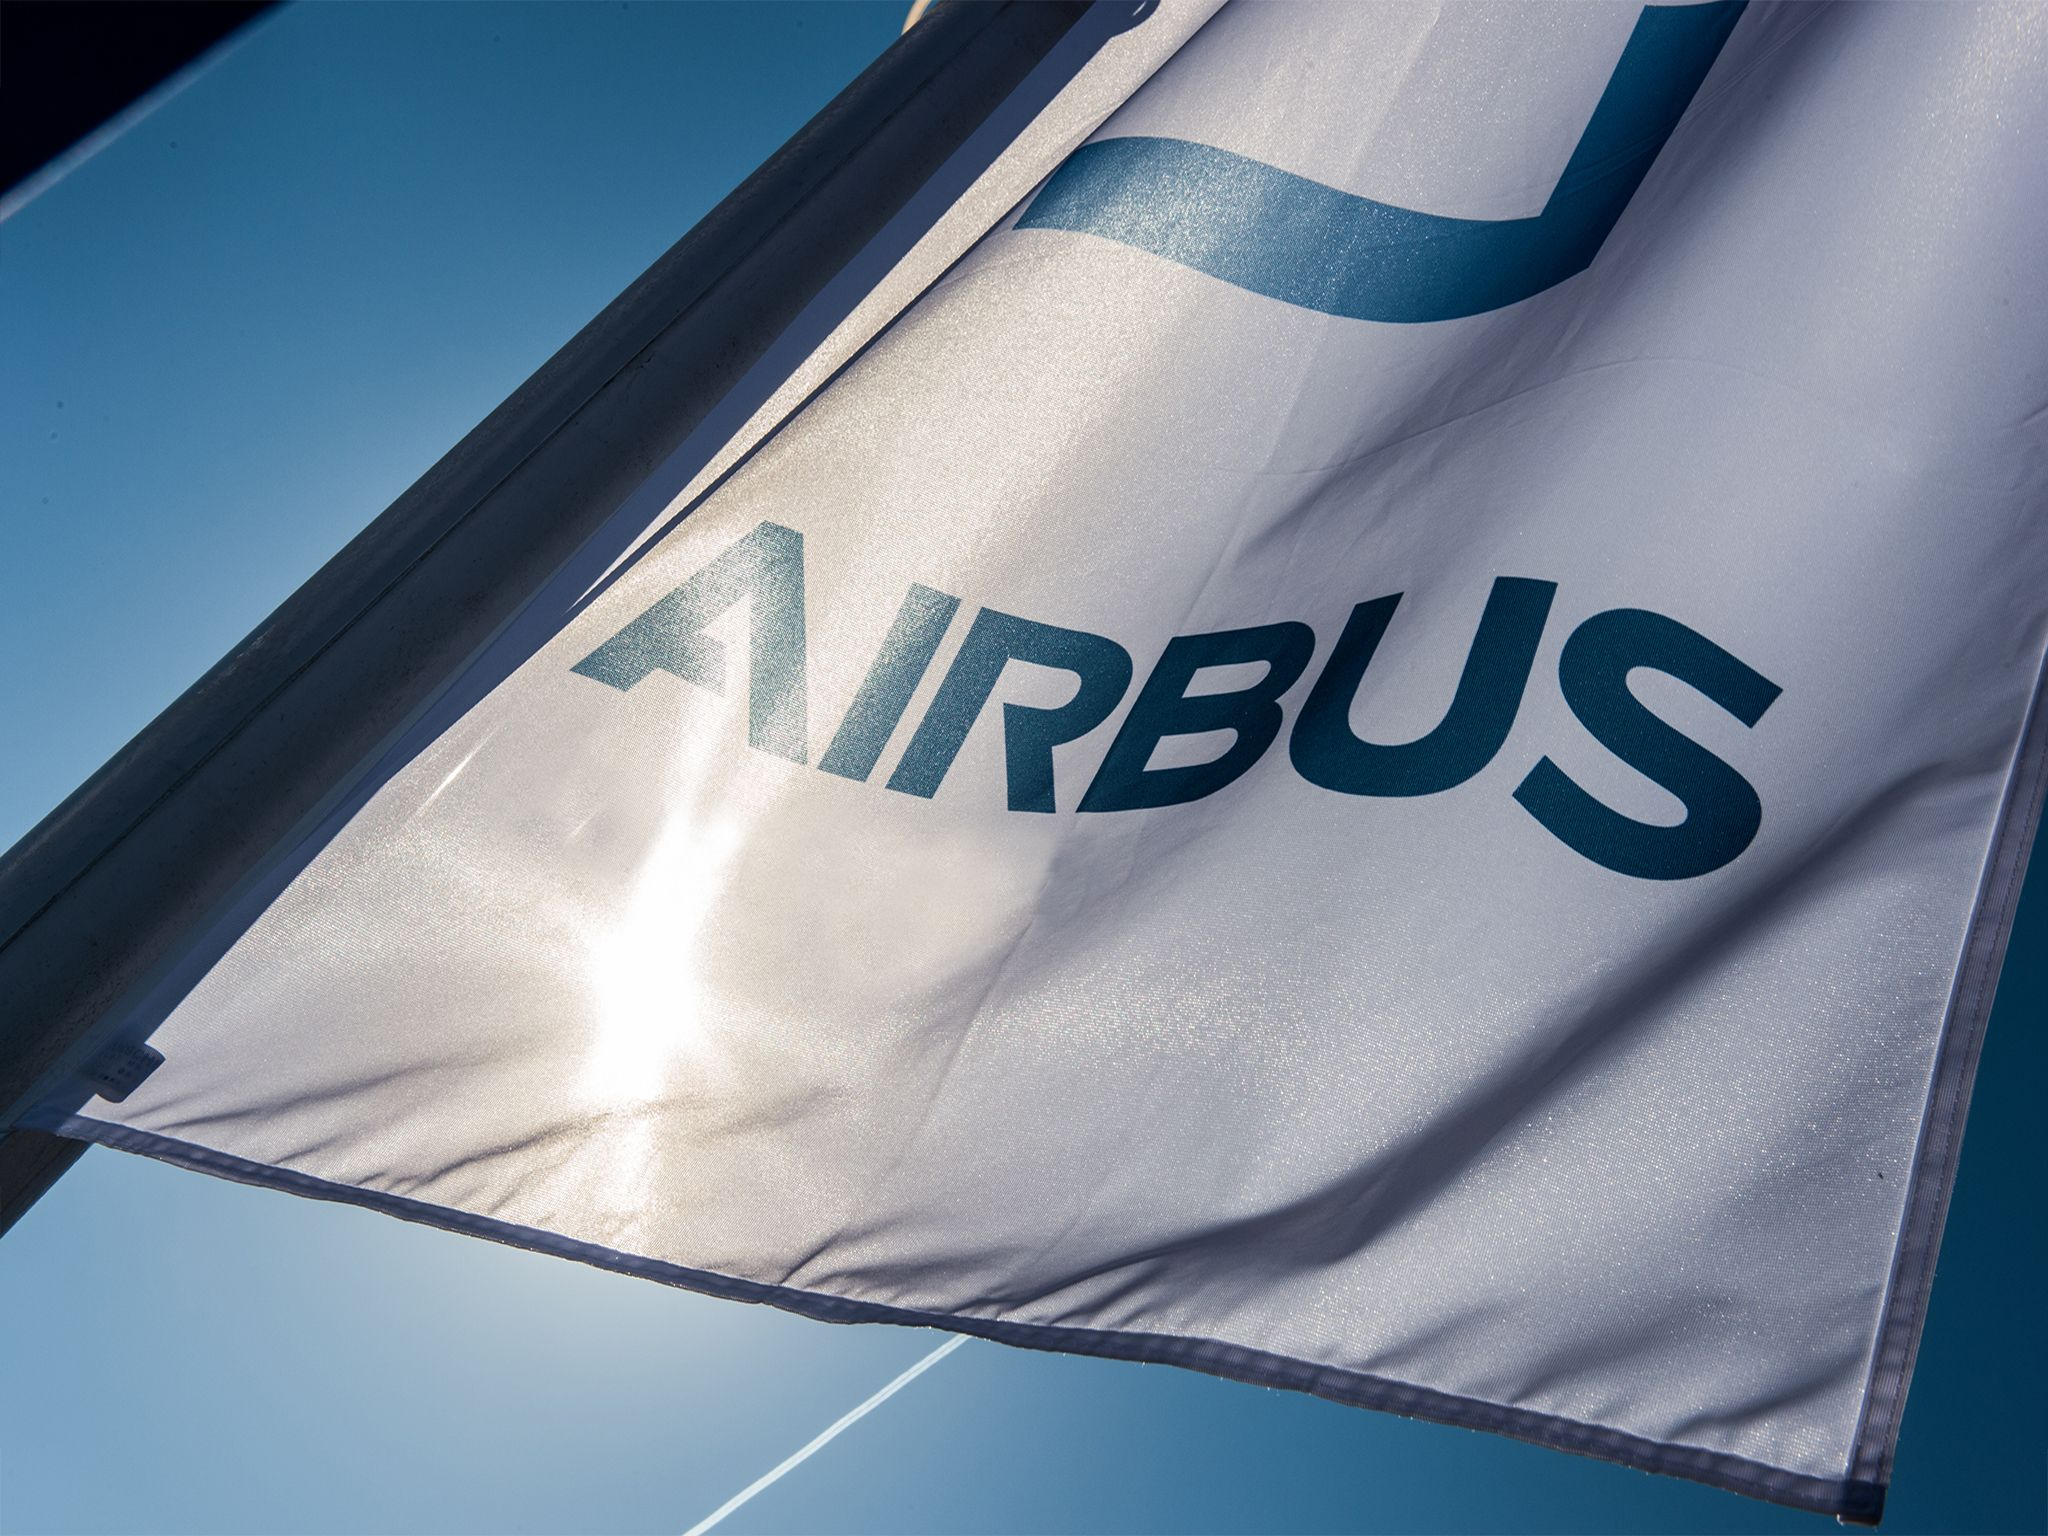 Airbus Embraces Digital Transformation